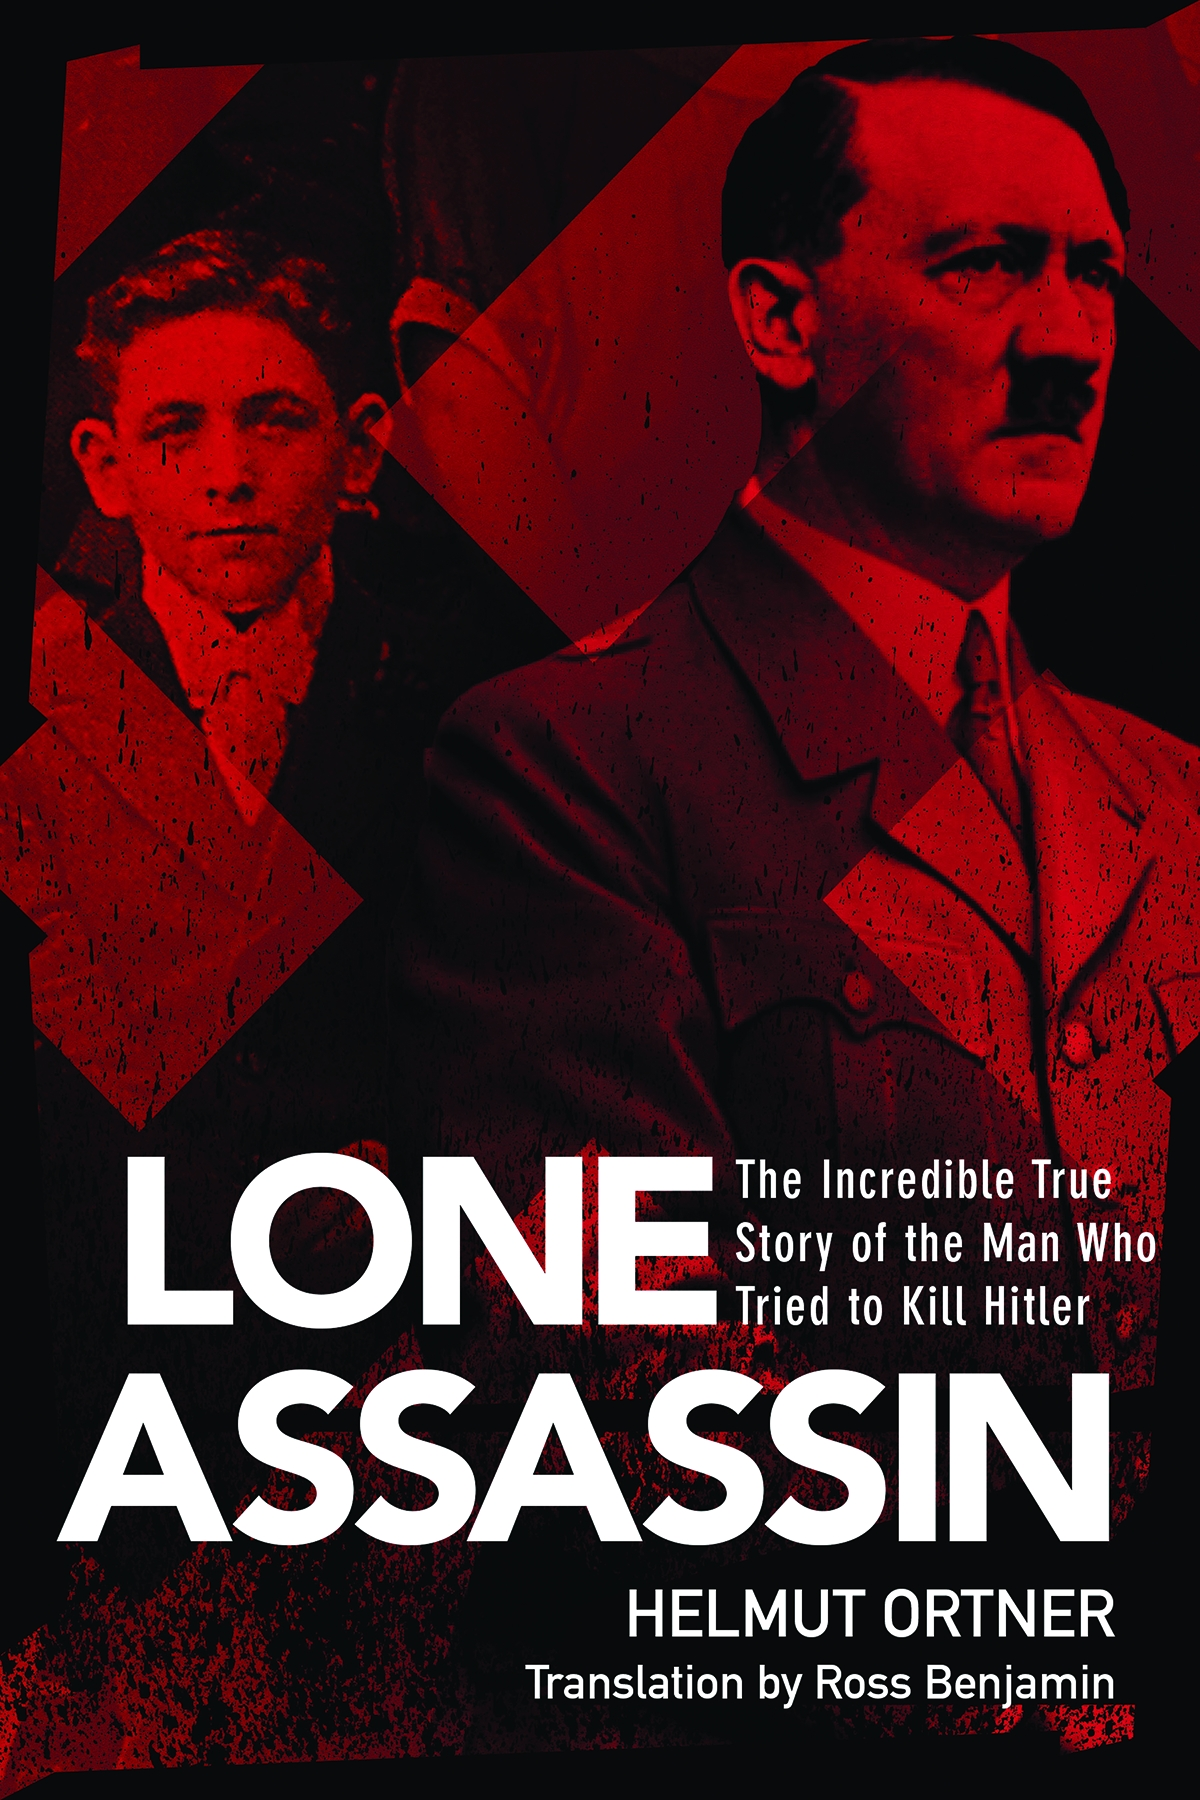 the man who almost killed hitler The man who was almost a man essay marcelo barbosa manhood, power and respect instead of childhood dave saunders is the main character of the story, the theme of the story is looking for maturity, respect and power.